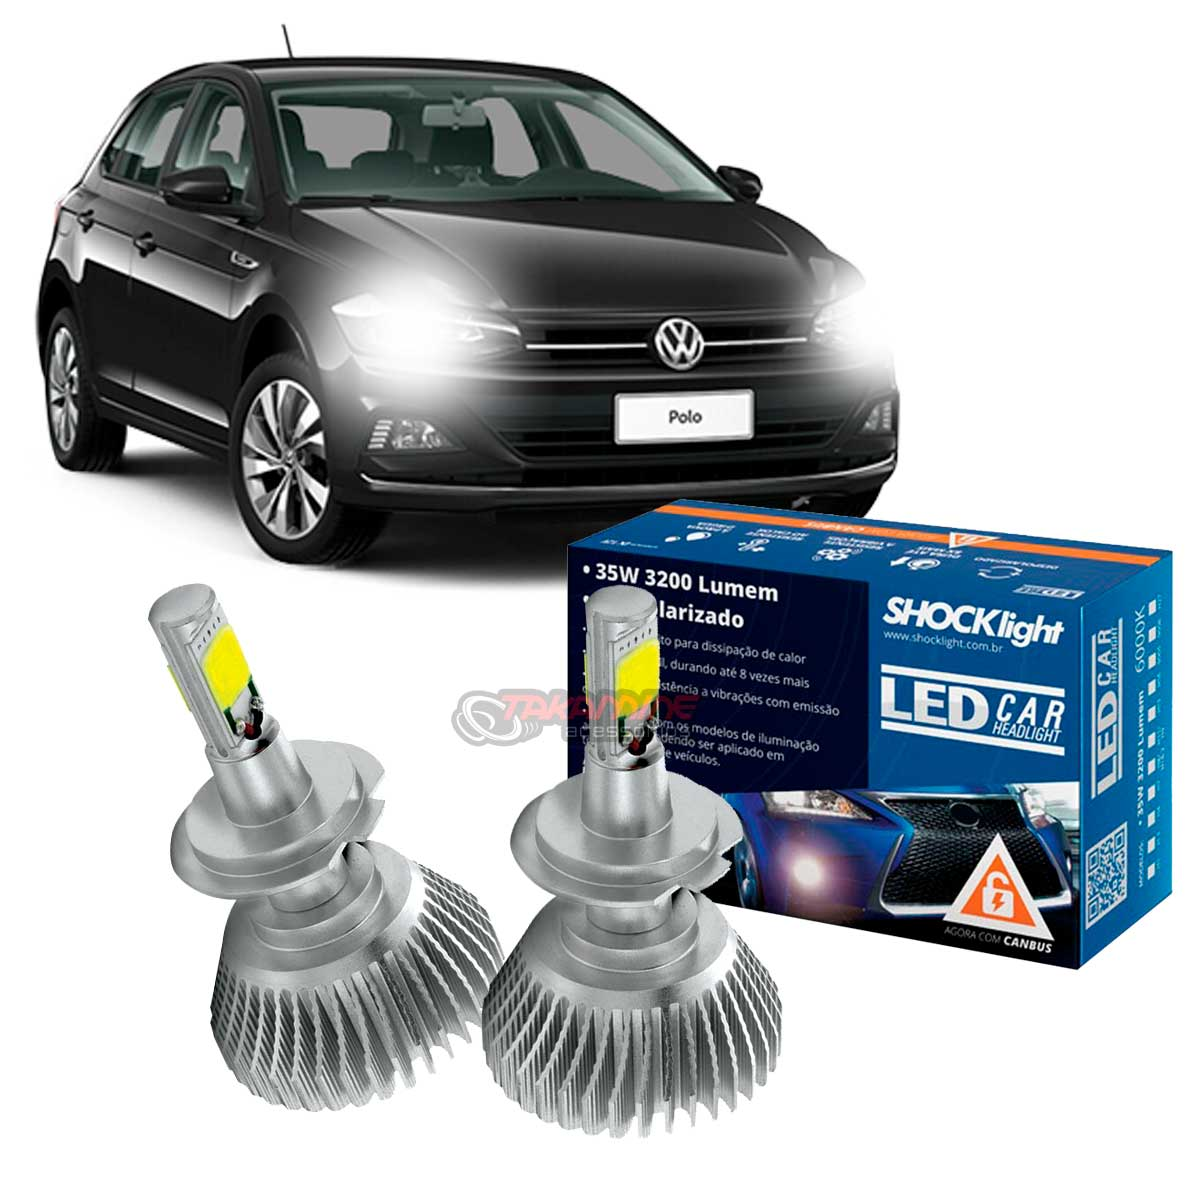 Kit LED Polo 2018 2019 2020 tipo xenon farol baixo H7 35W Headlight